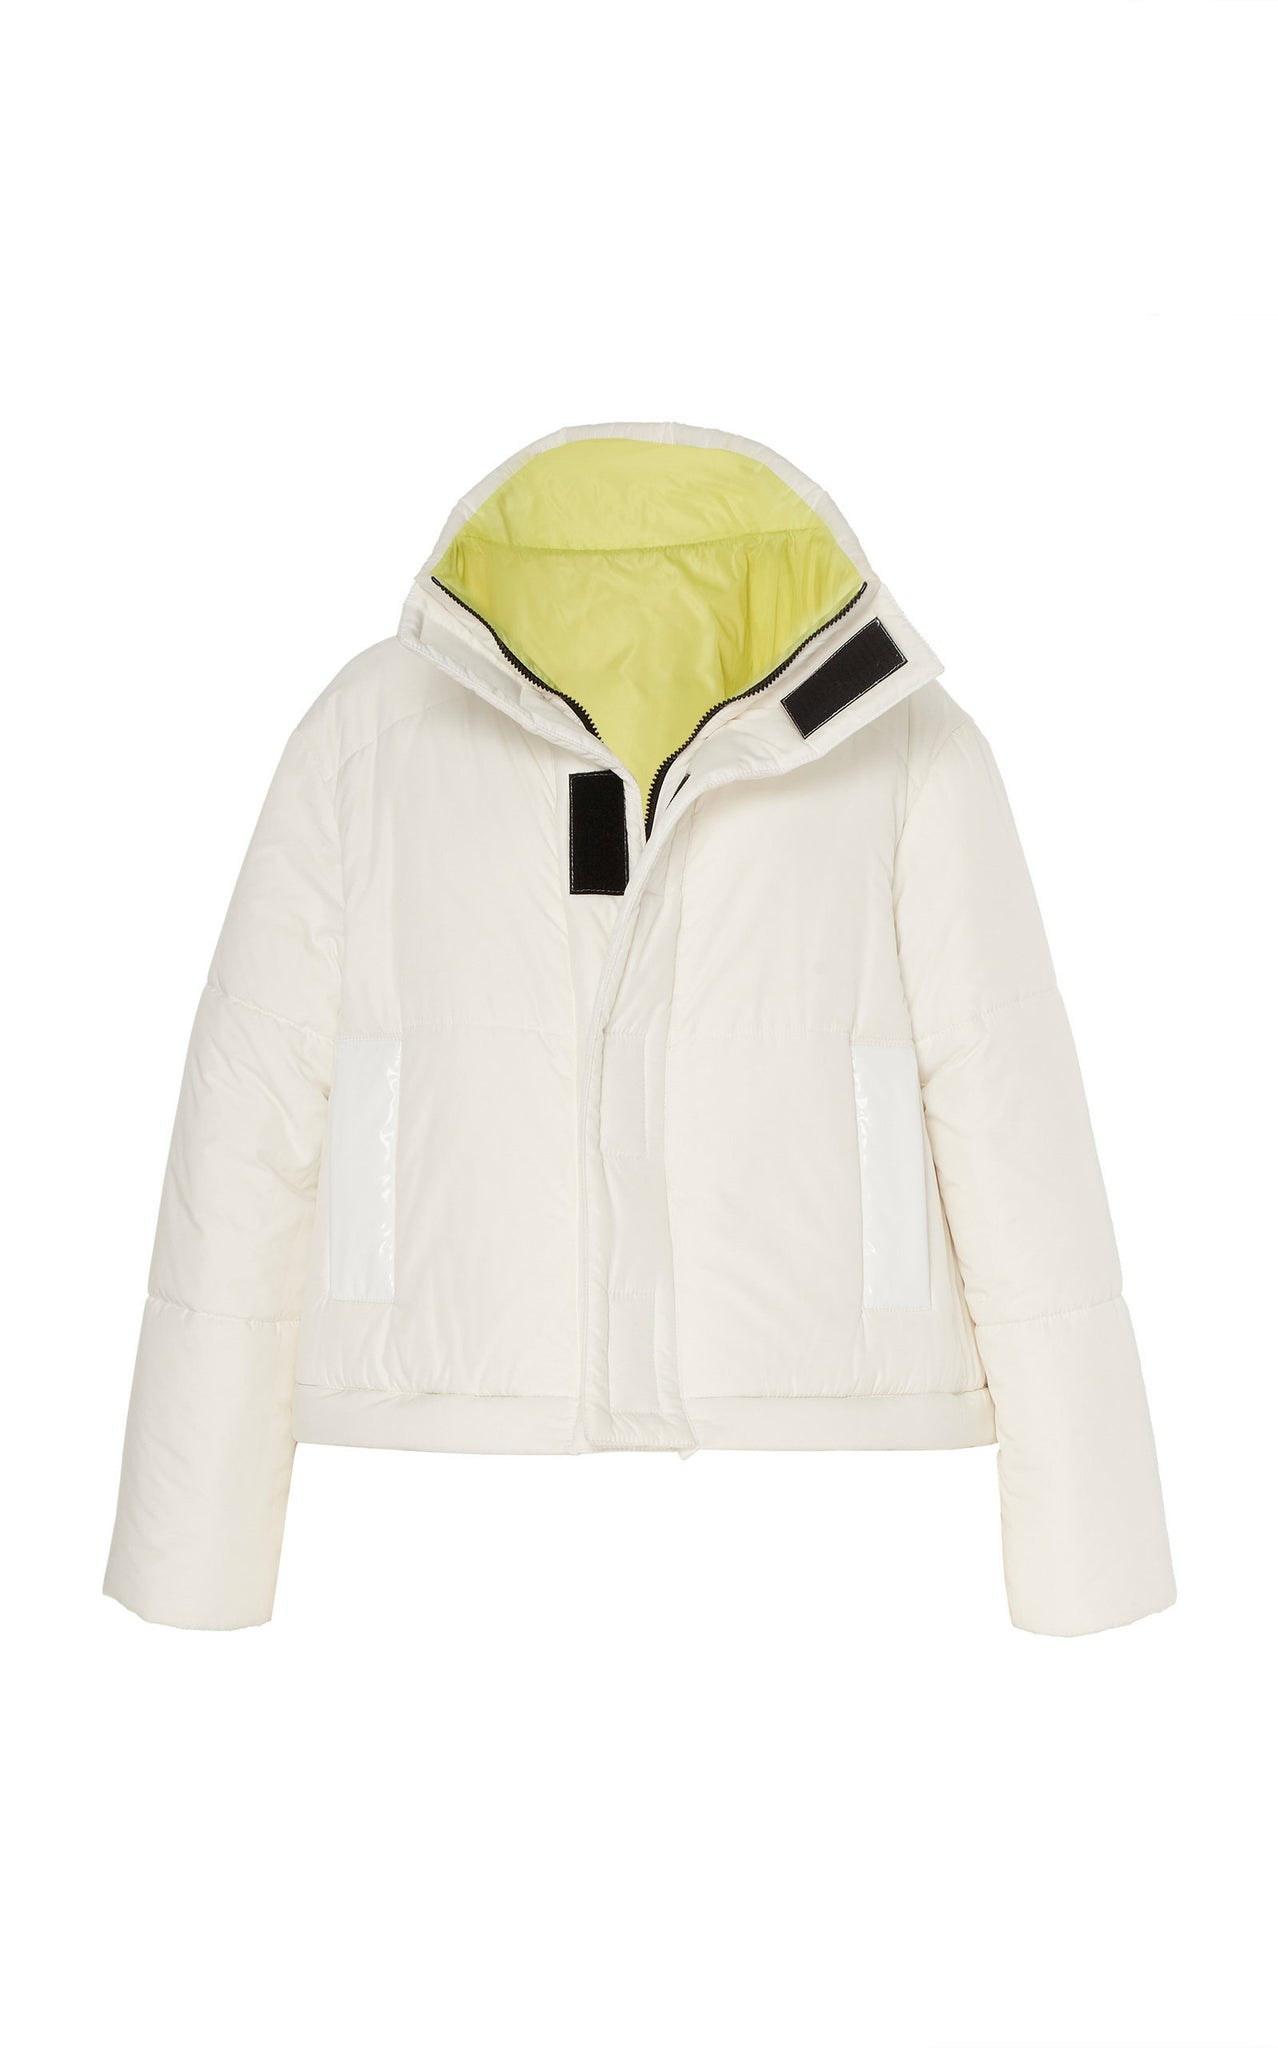 WHITE / ACID LIME REVERSIBLE CONVERTIBLE DOWN COAT